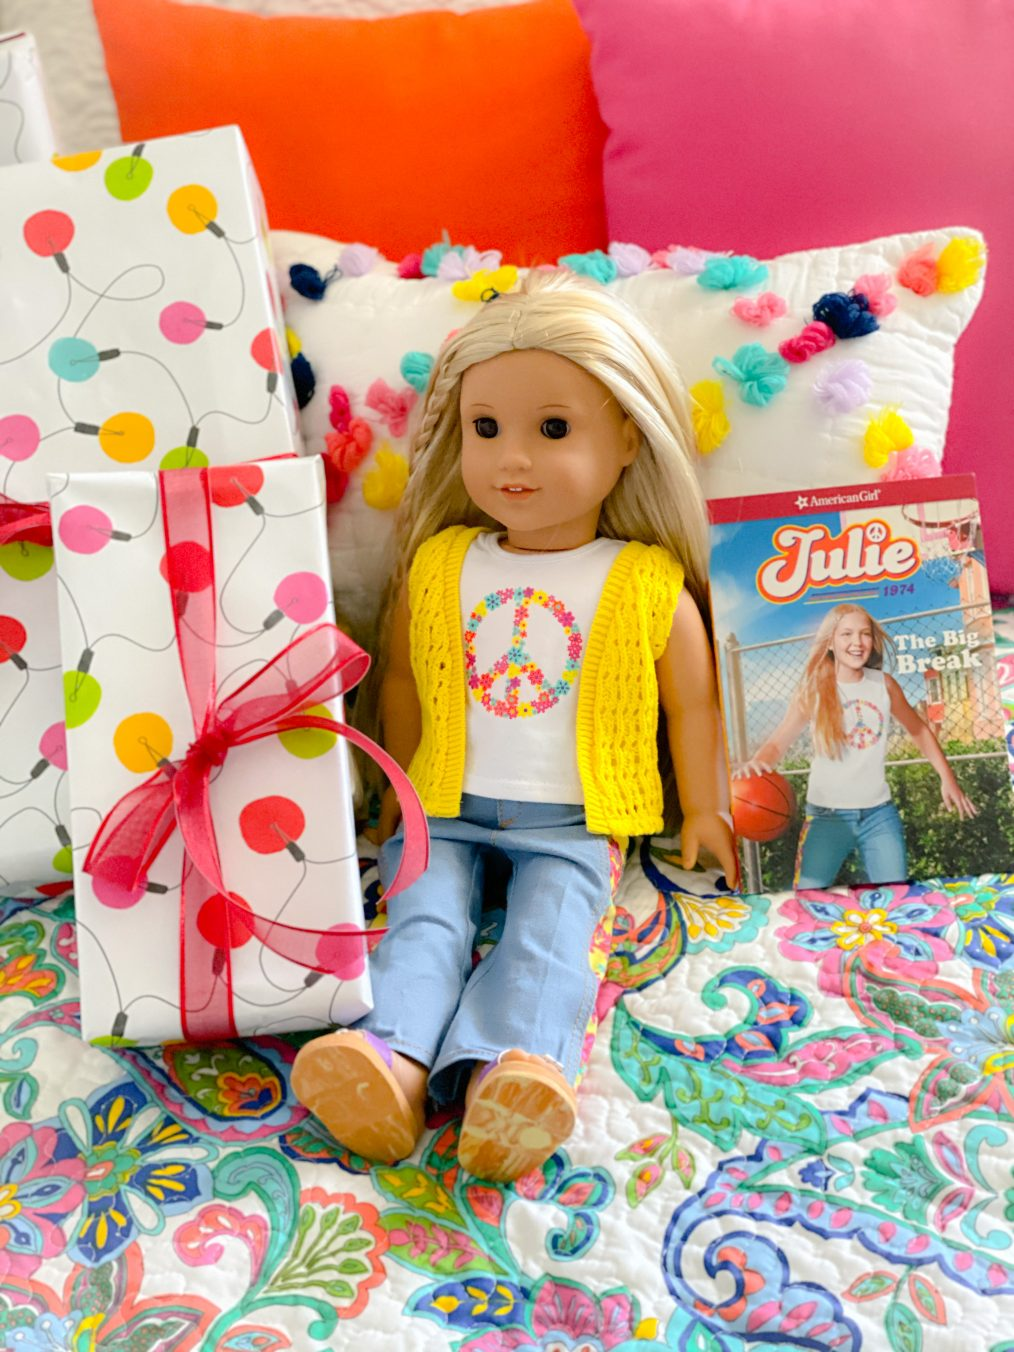 American Girl Julie in yellow crochet vest and bellbottoms surrounded by holiday lights wrapped gifts